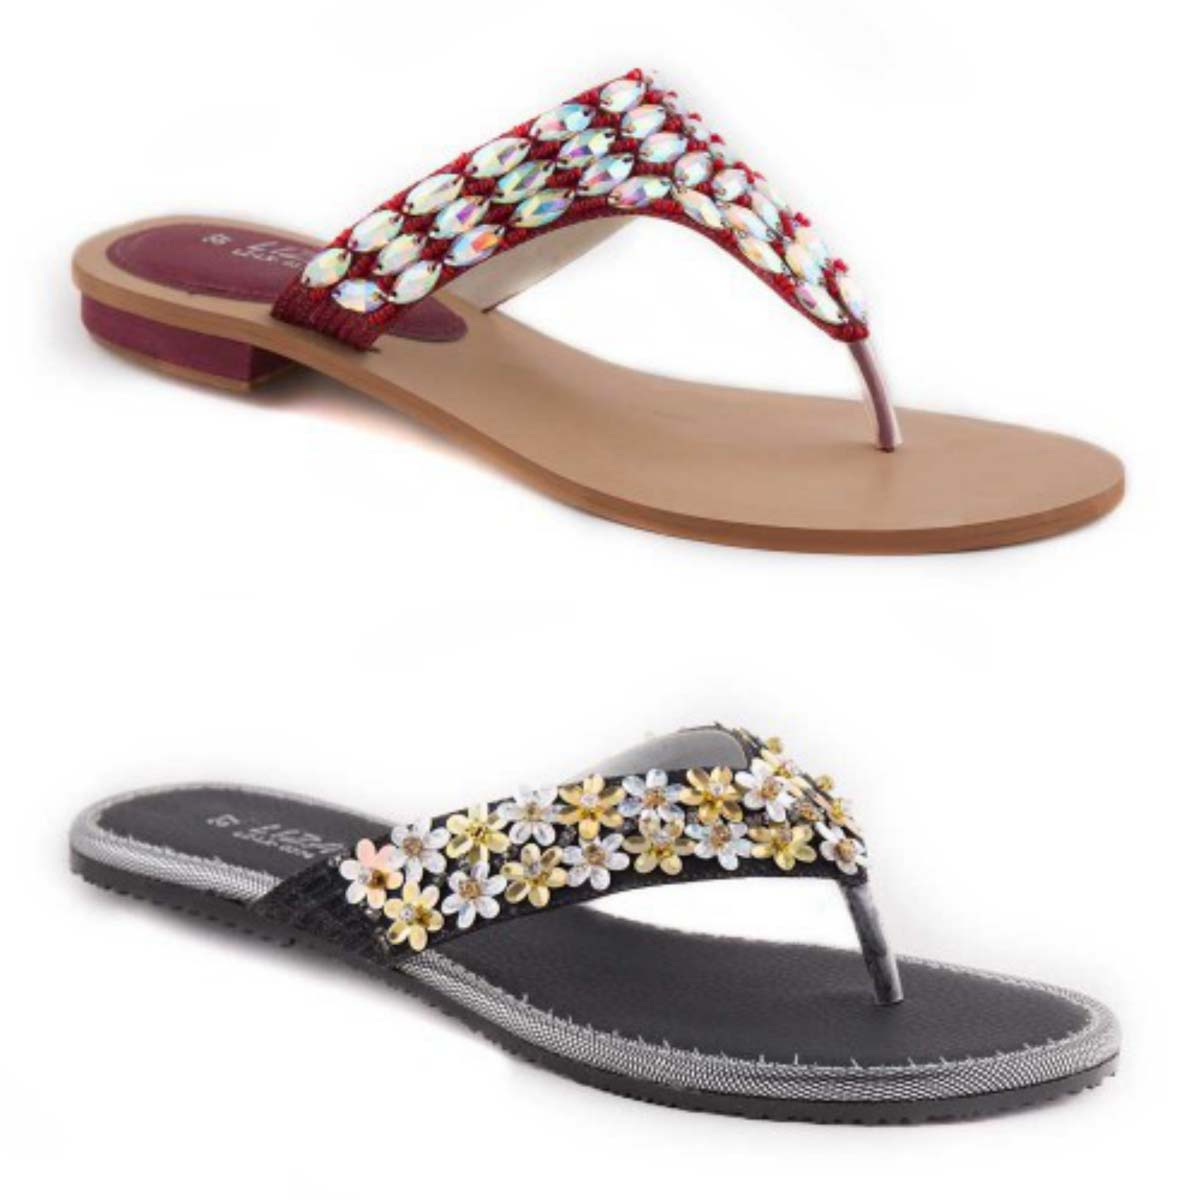 Latest Servis Shoes Chappals and Sandals Collection For Women 2016-2107